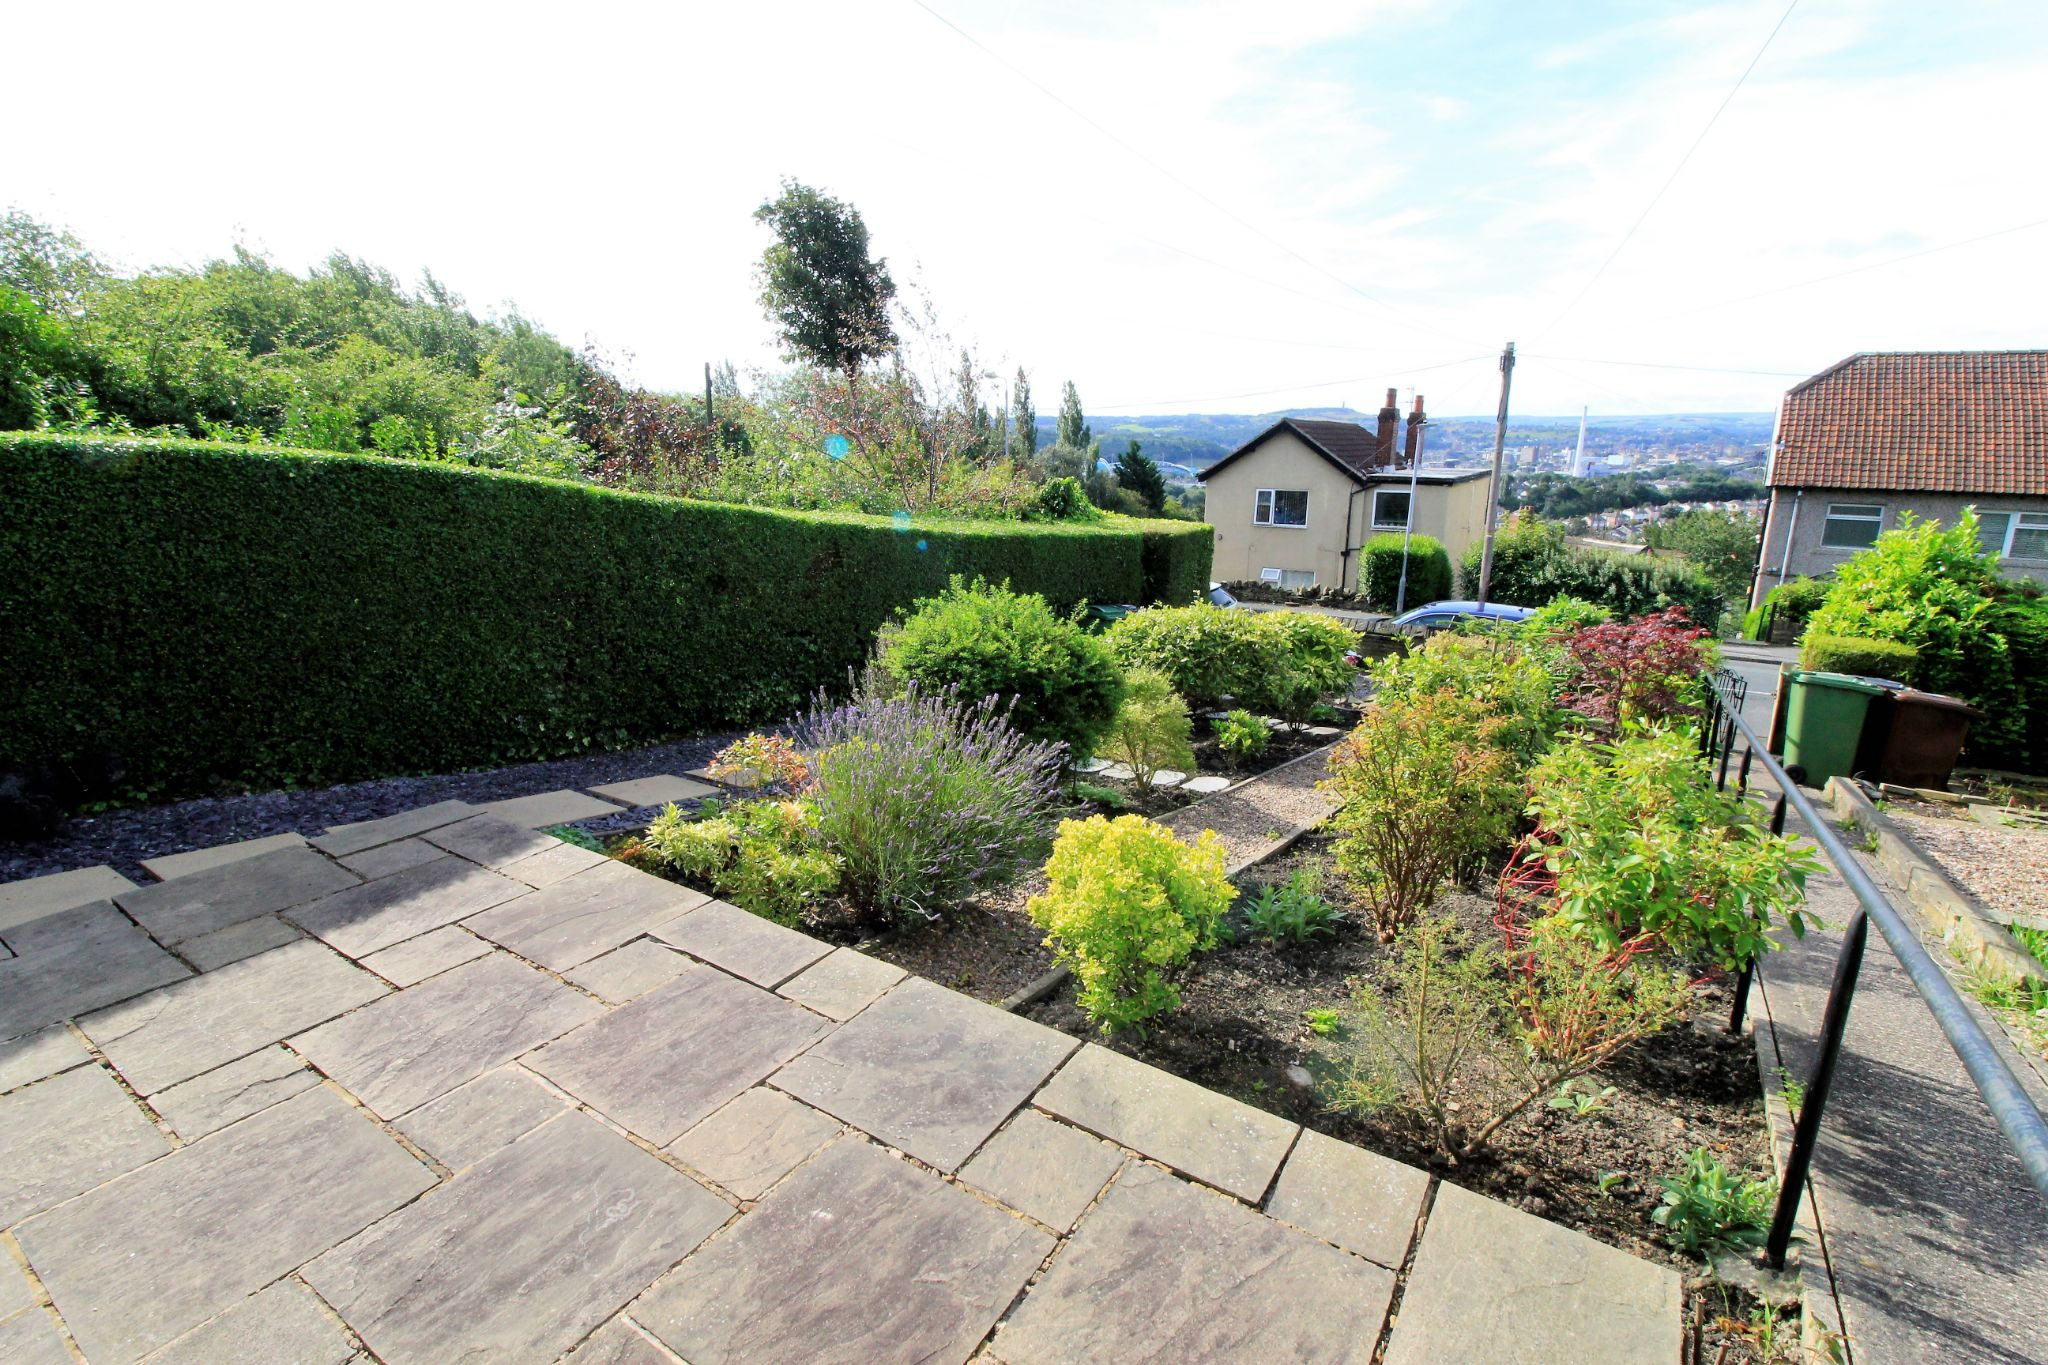 2 bedroom cottage house SSTC in Huddersfield - Front patio seating area